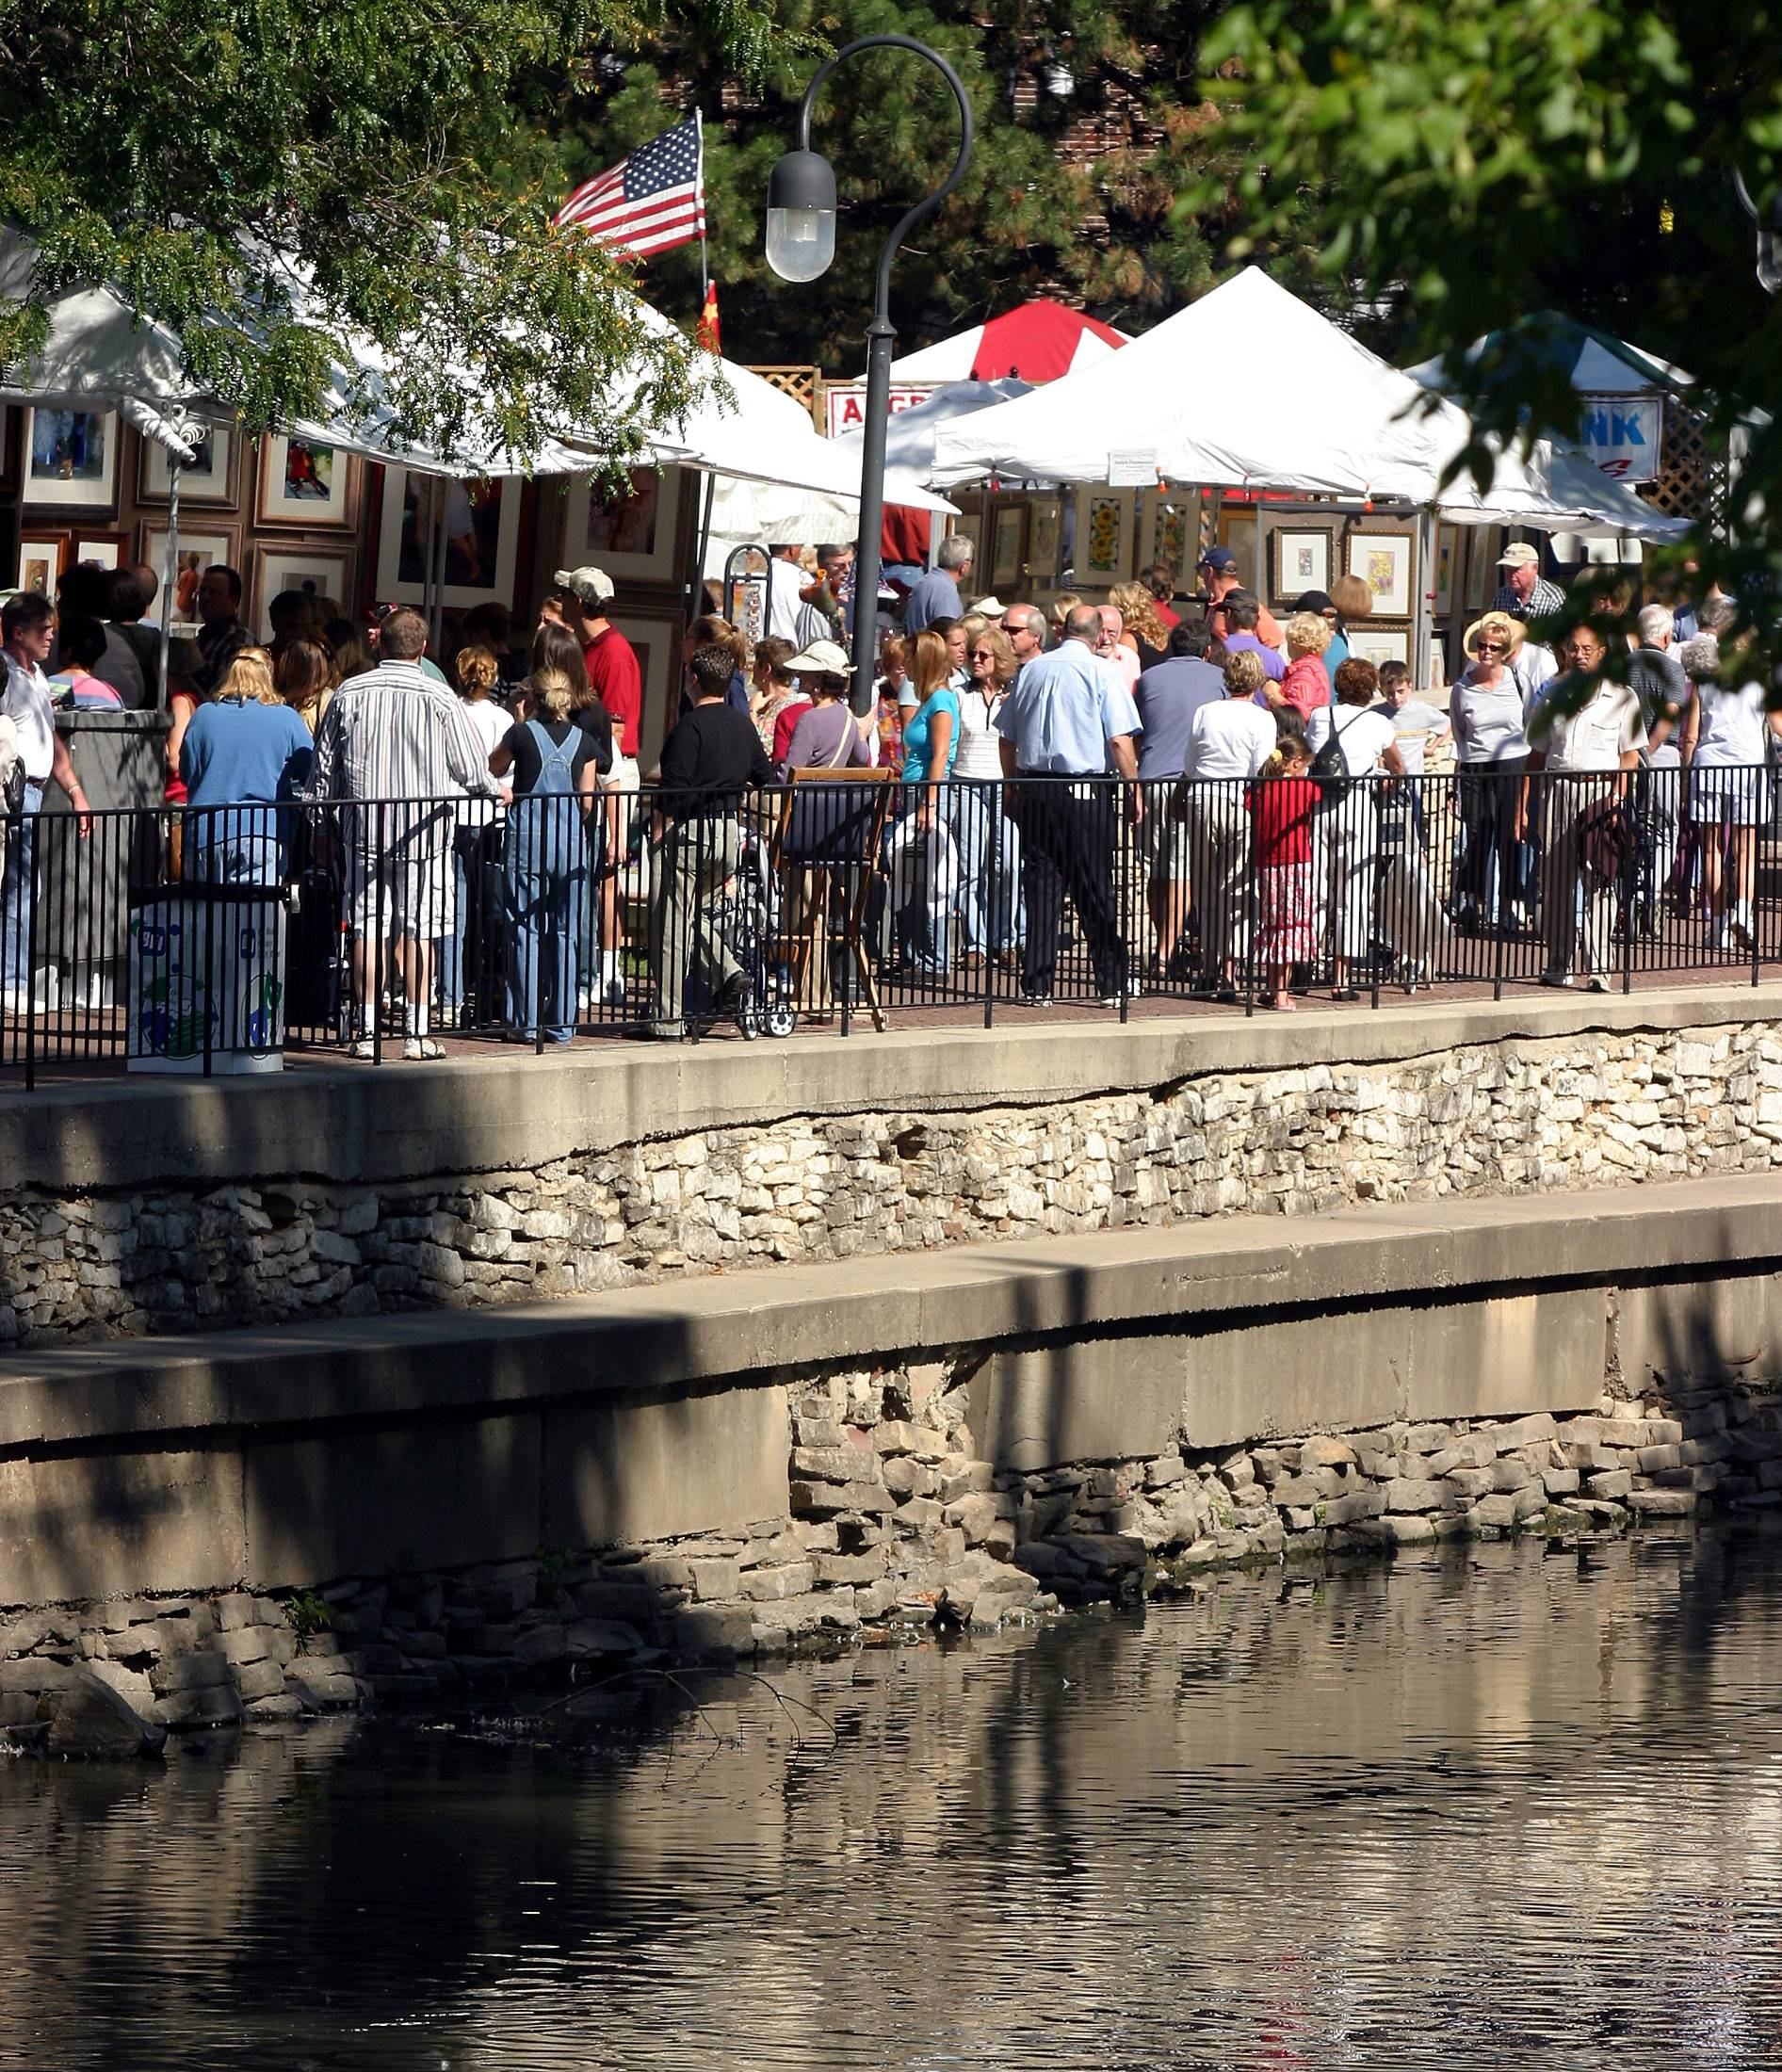 See a variety of artwork this weekend at the 32nd annual Riverwalk Fine Art Fair in Naperville.